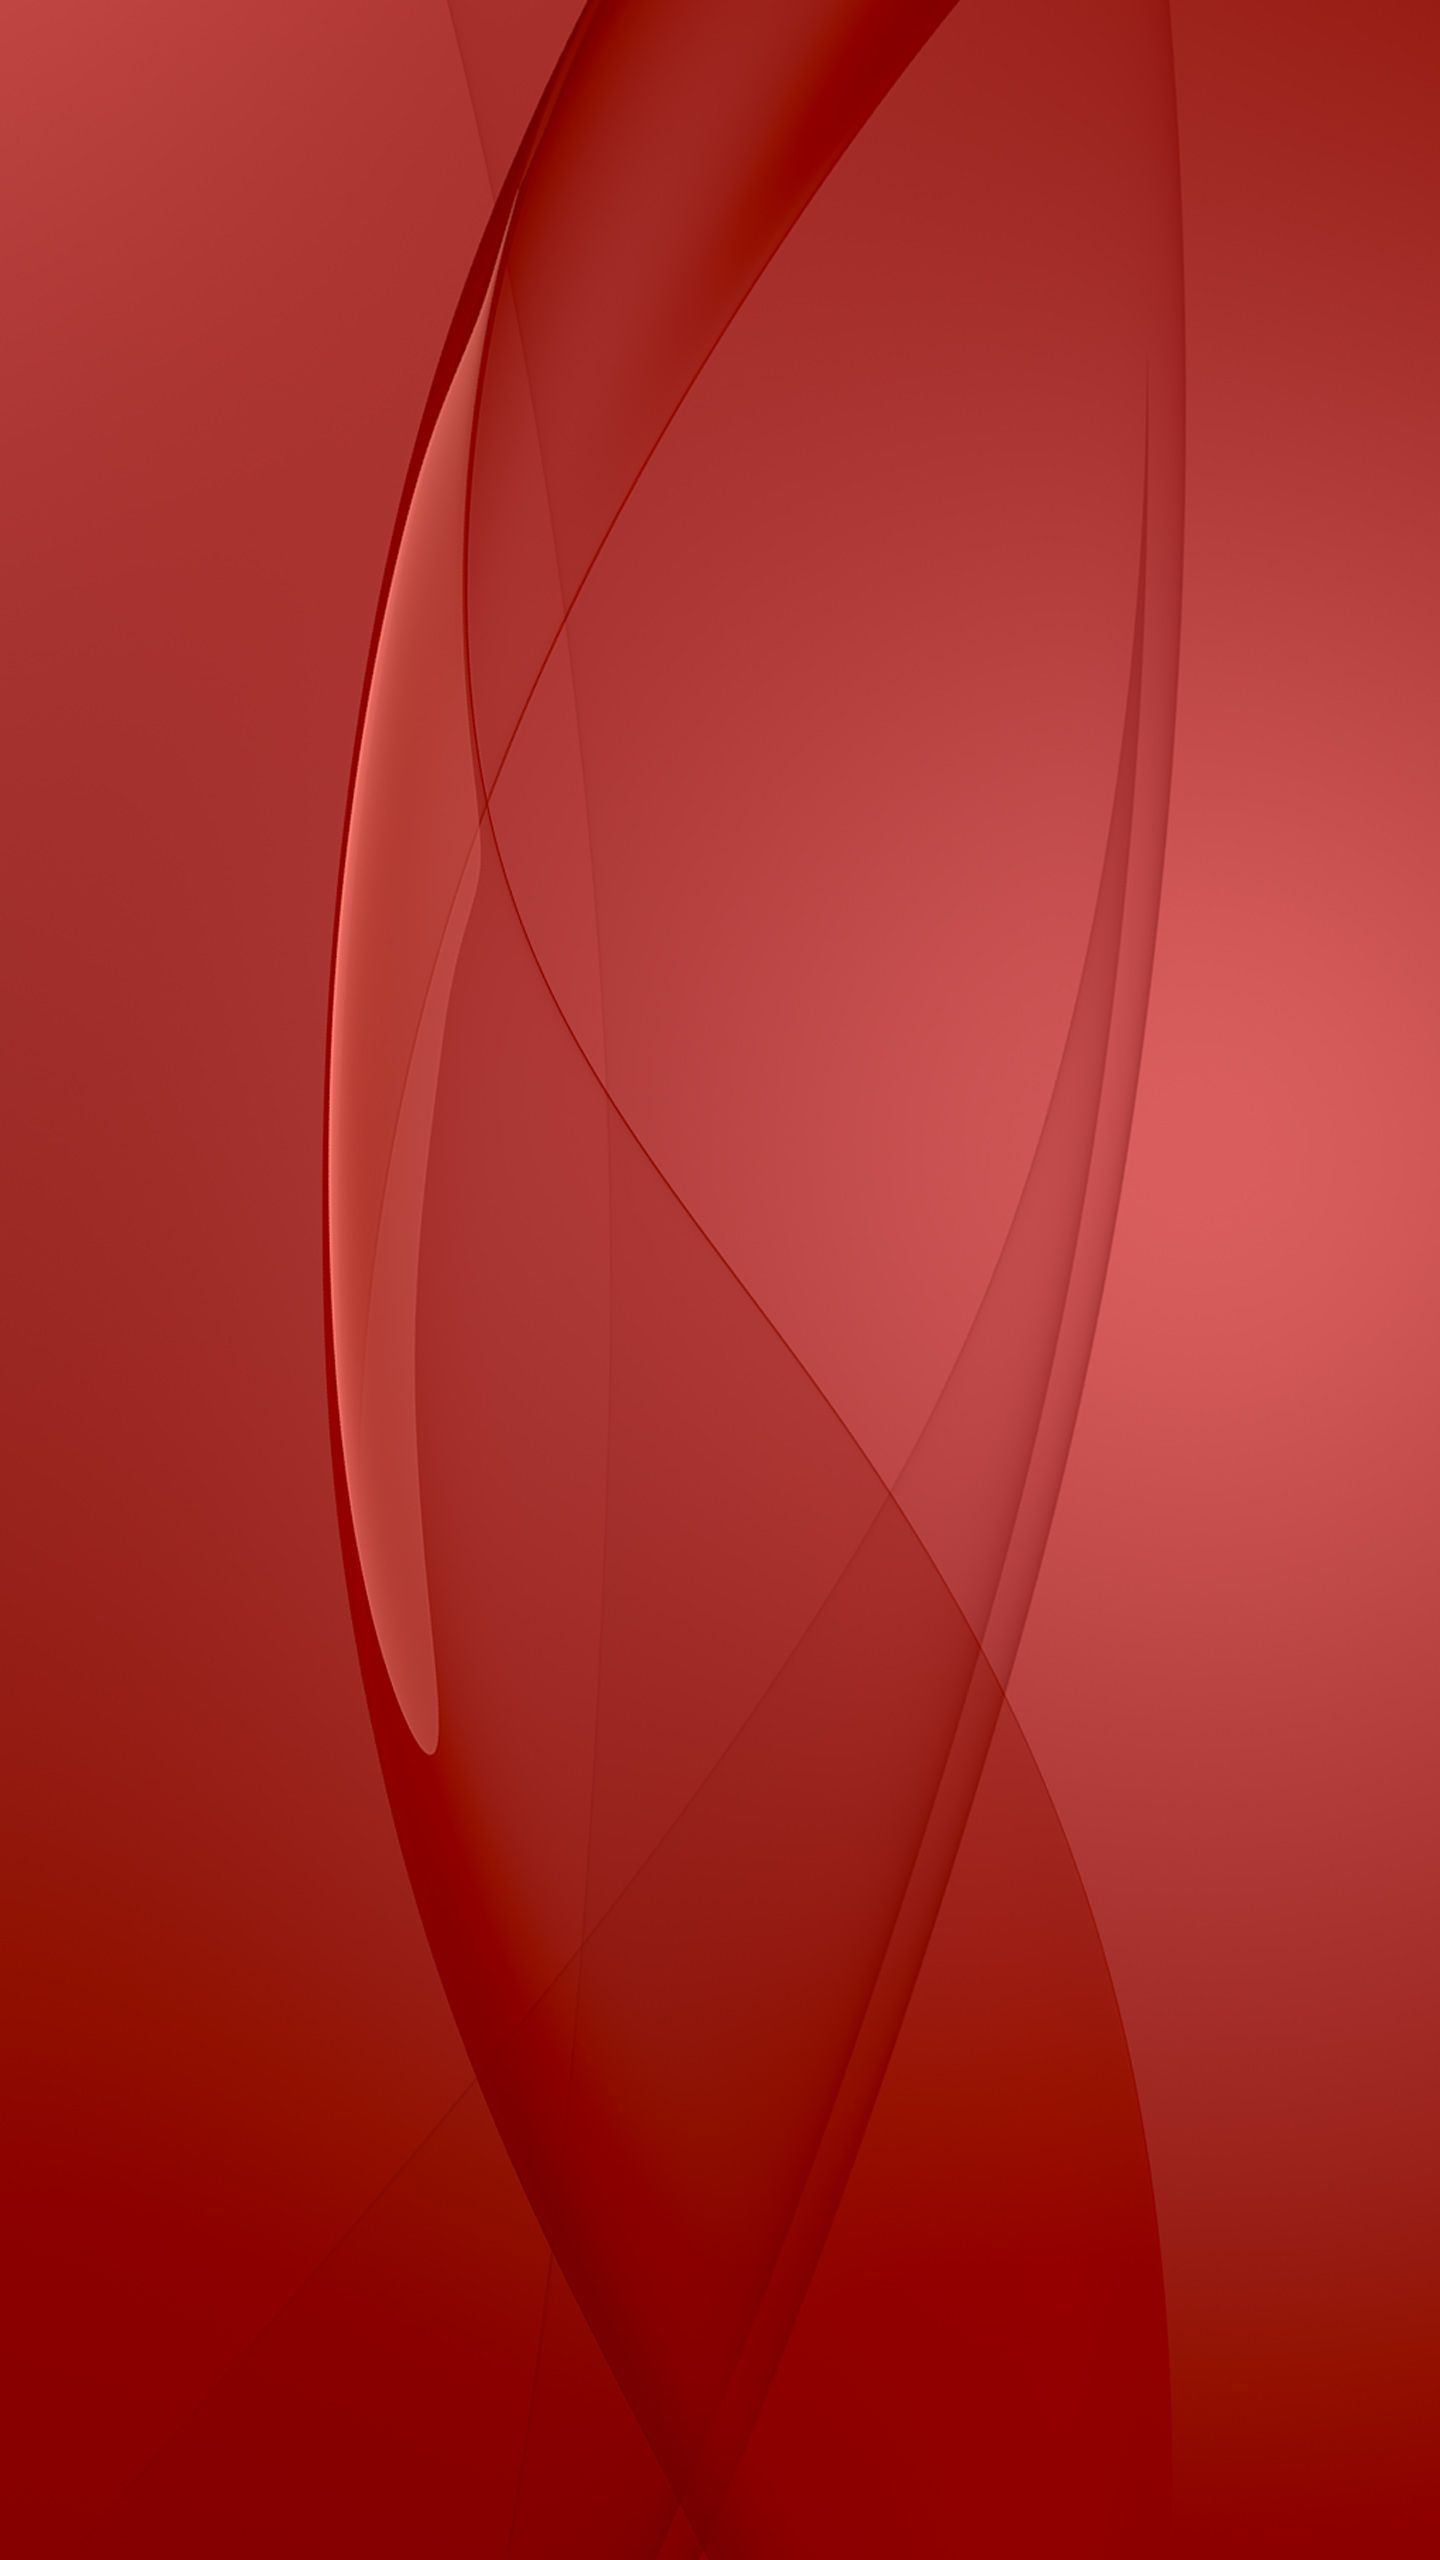 Red Abstract Mobile Wallpaper Android Wallpaper Mobile